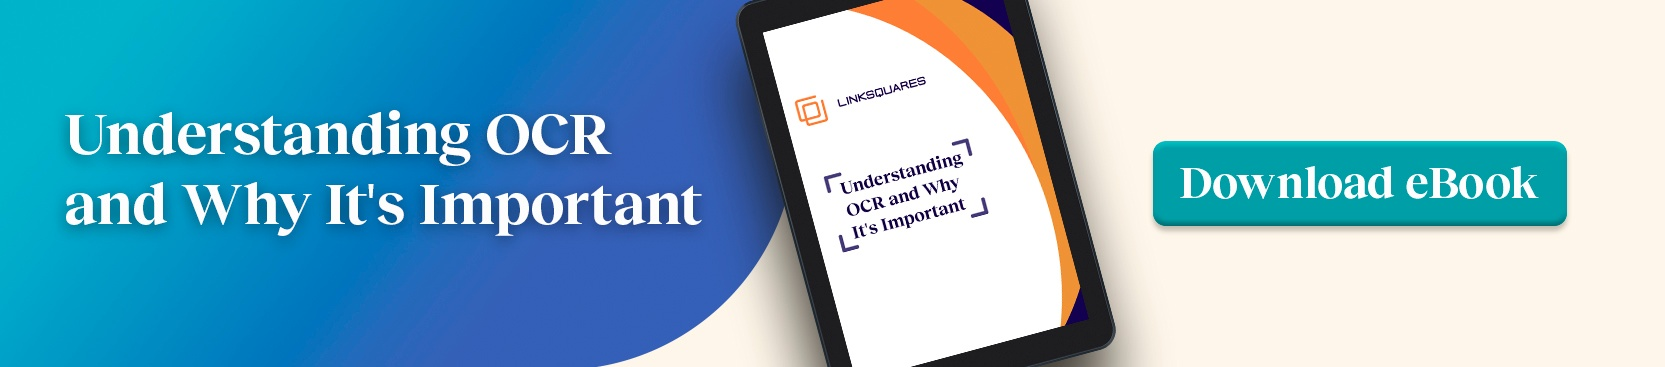 download ebook on why OCR is important